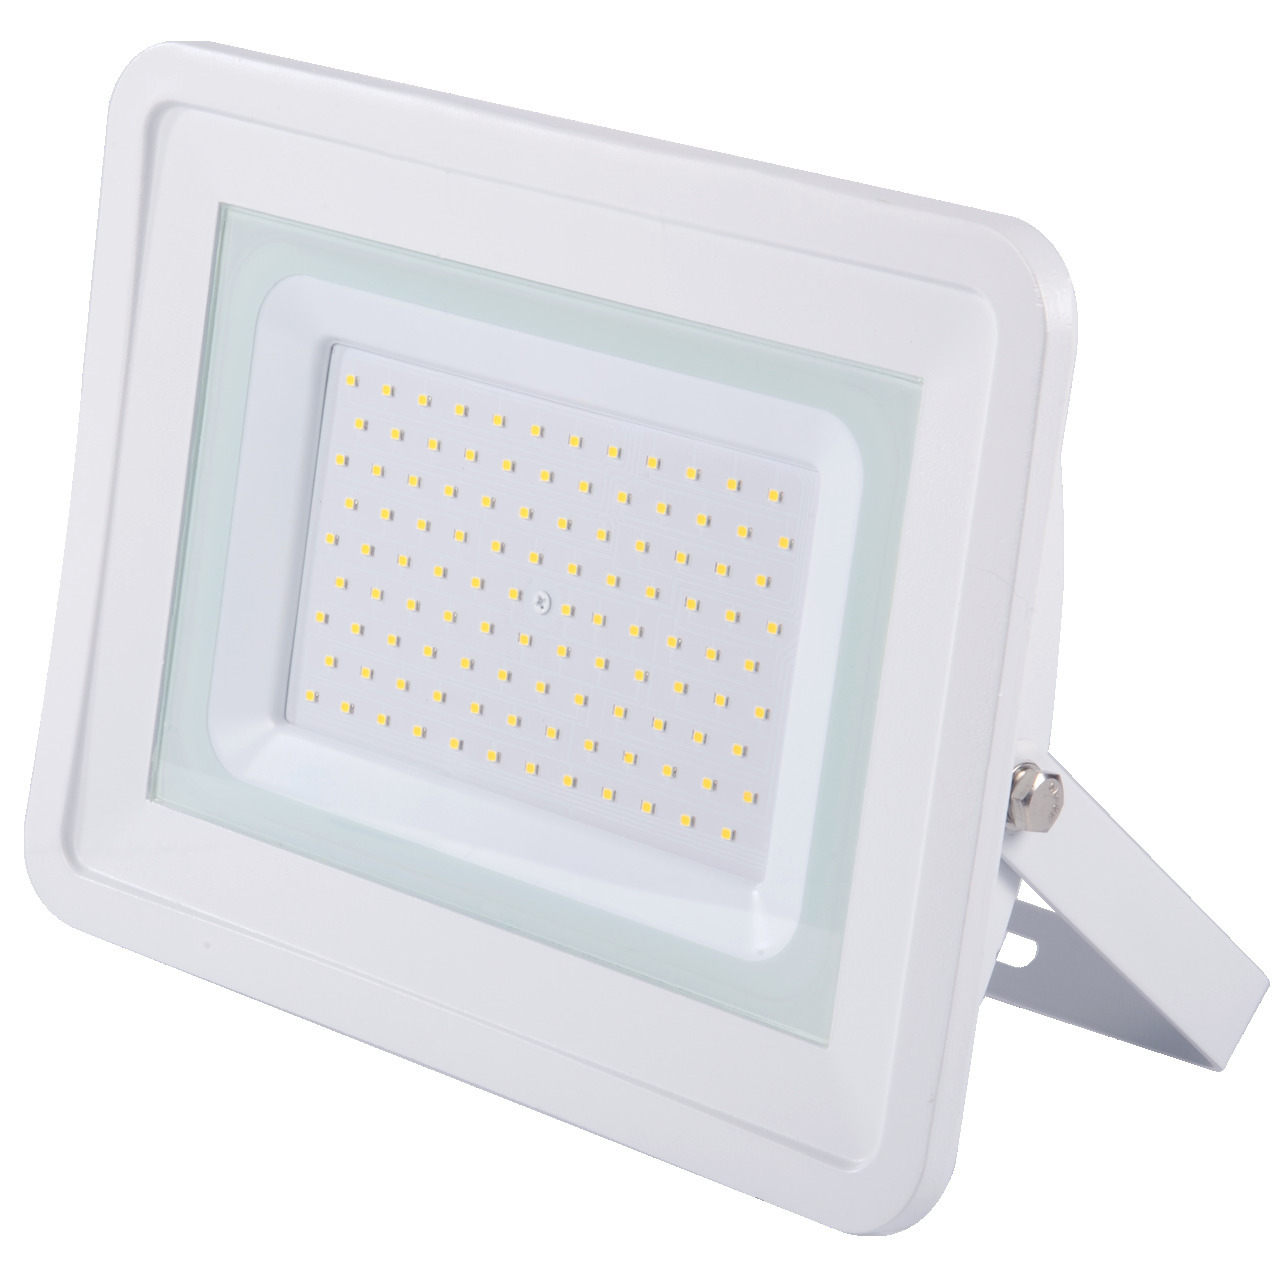 Optonica 100-W-LED-Fluter- neutralweiss- 8-500 lm- IP65